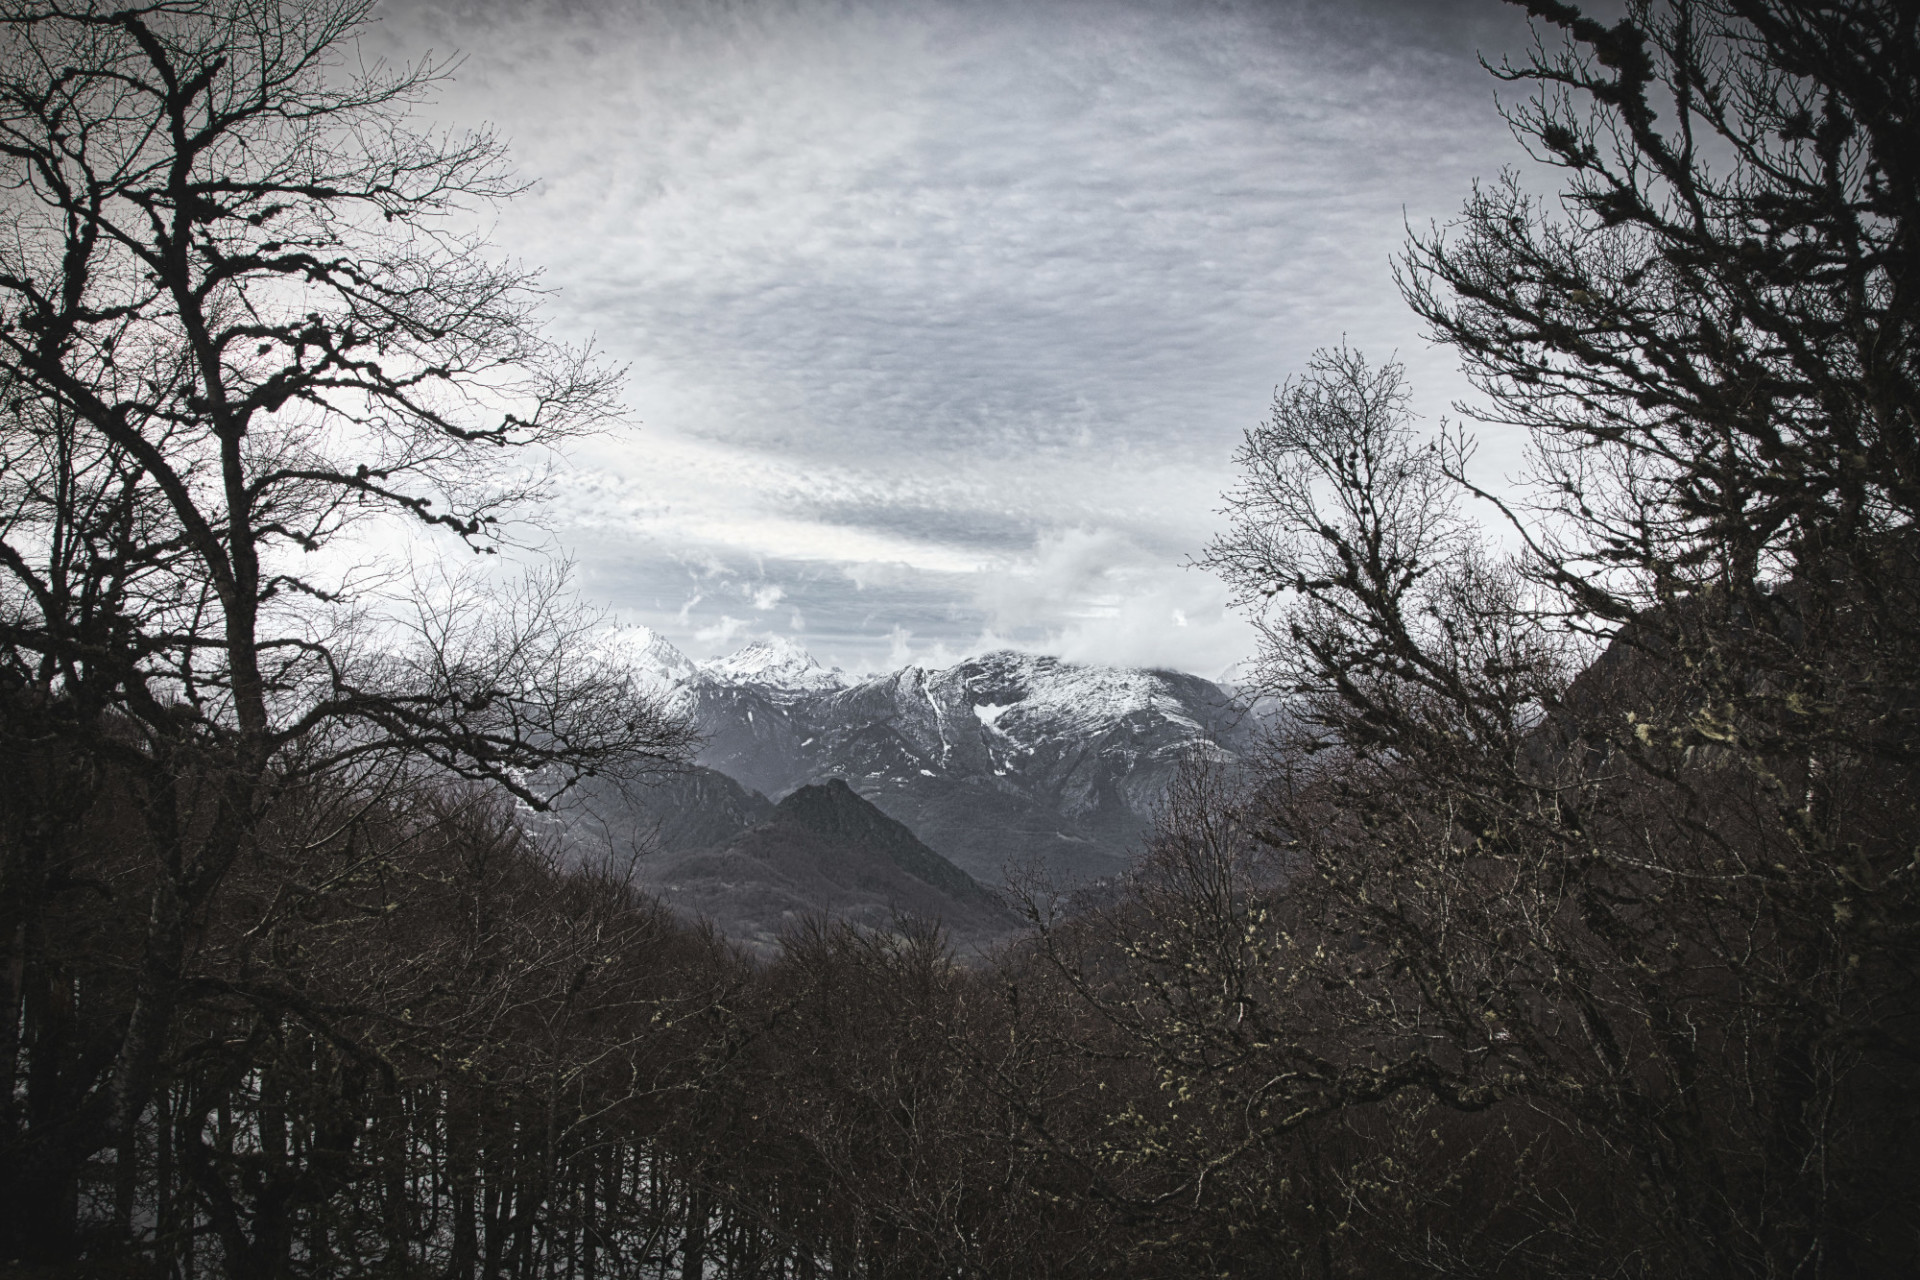 View of the mountains from the forest